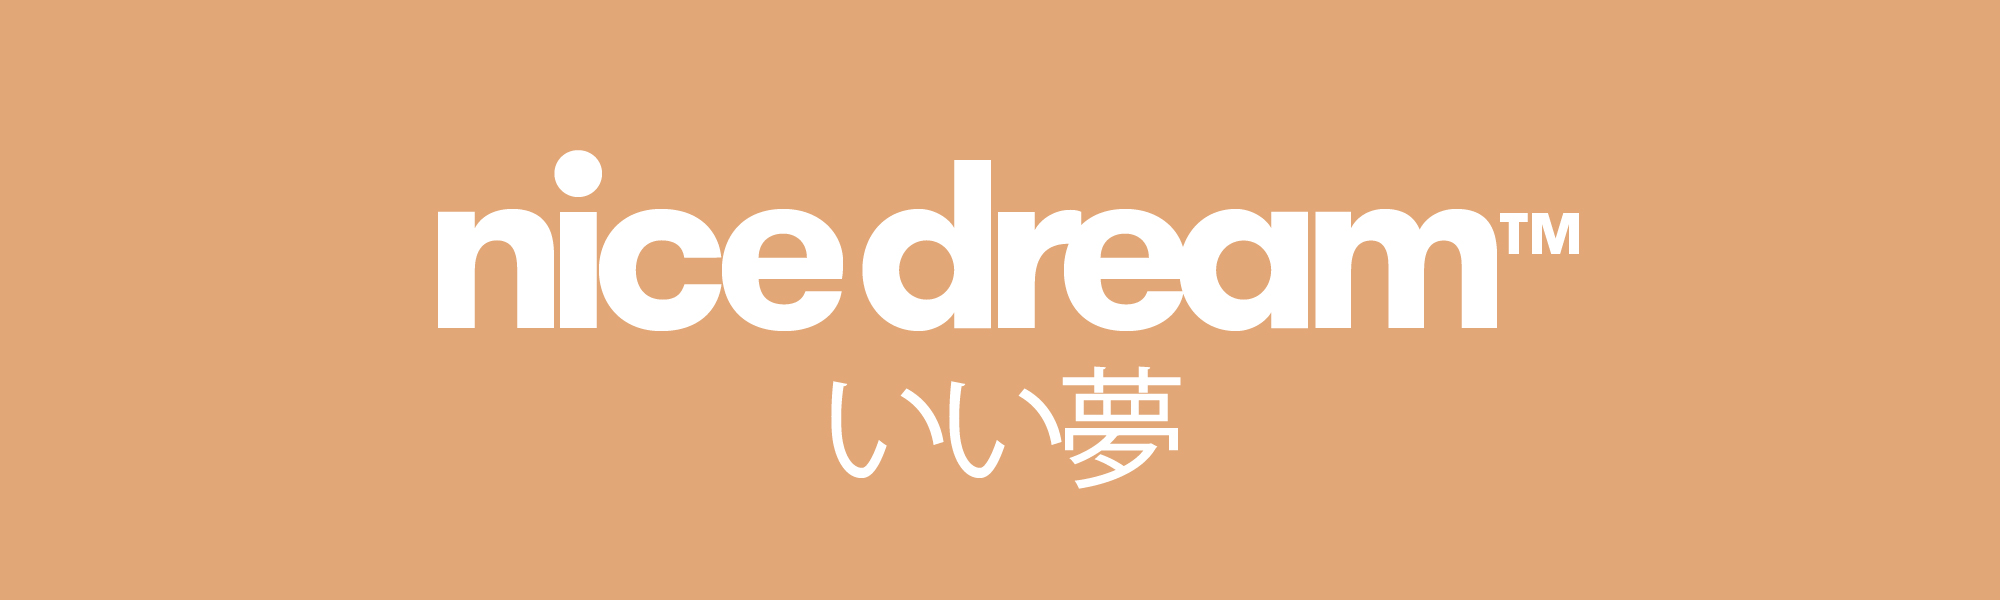 nicedream_logo_2000wide.jpg